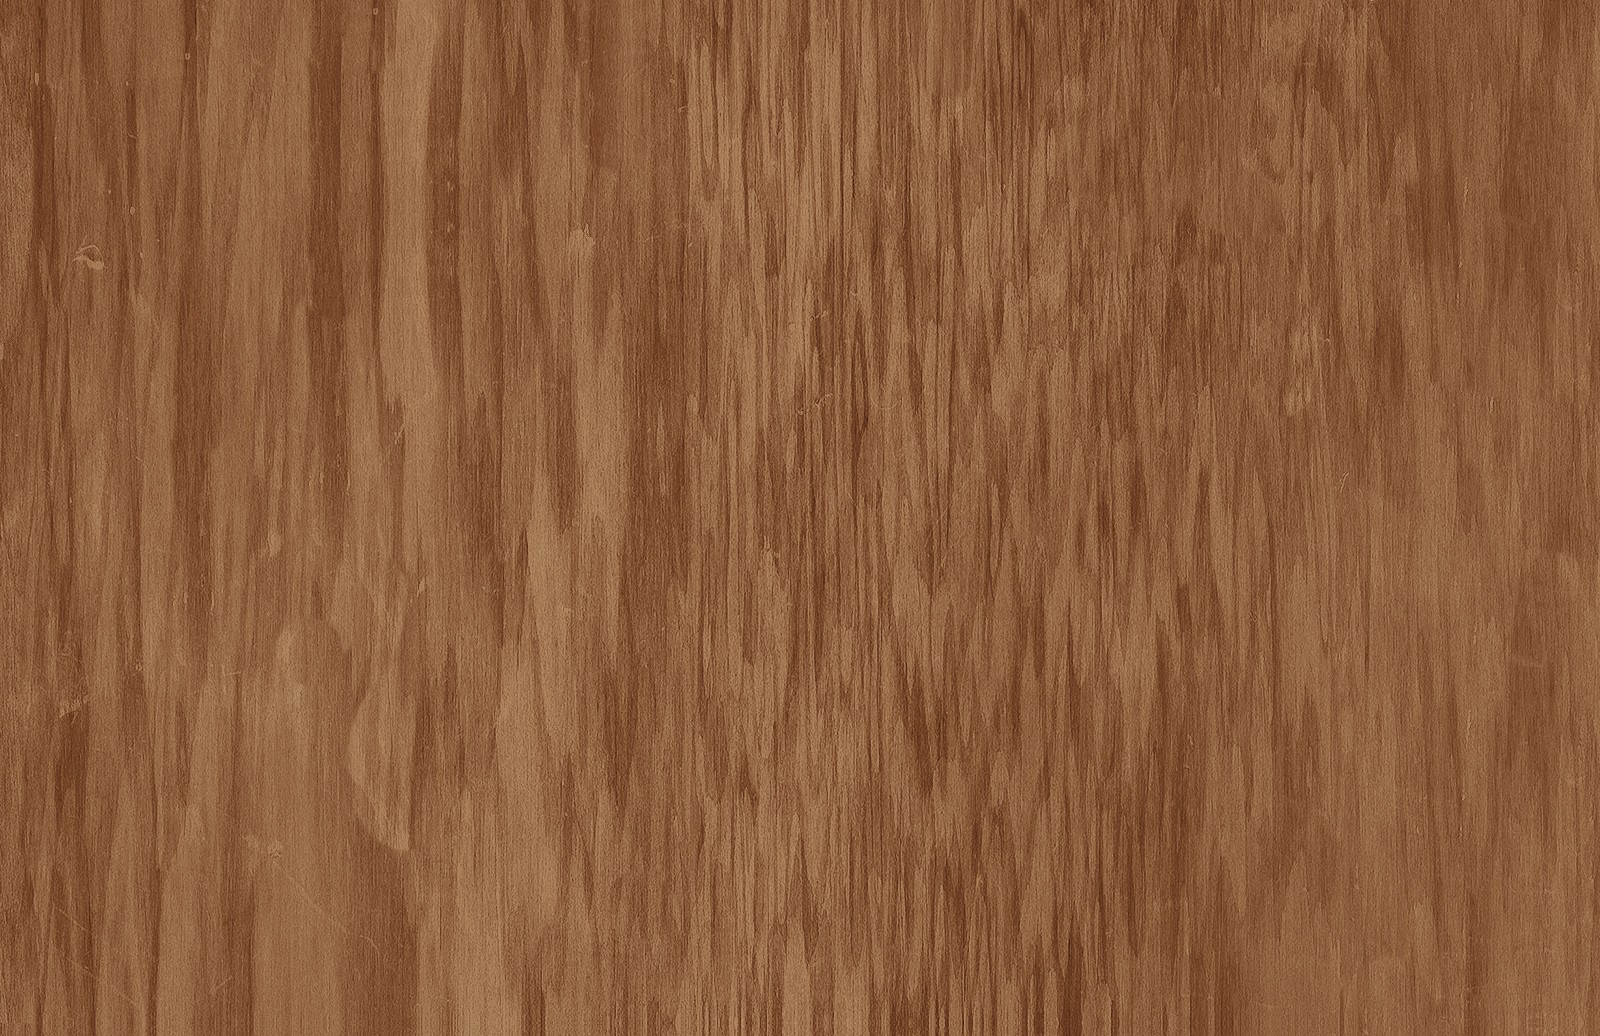 Free Seamless Wood Textures Medialoot